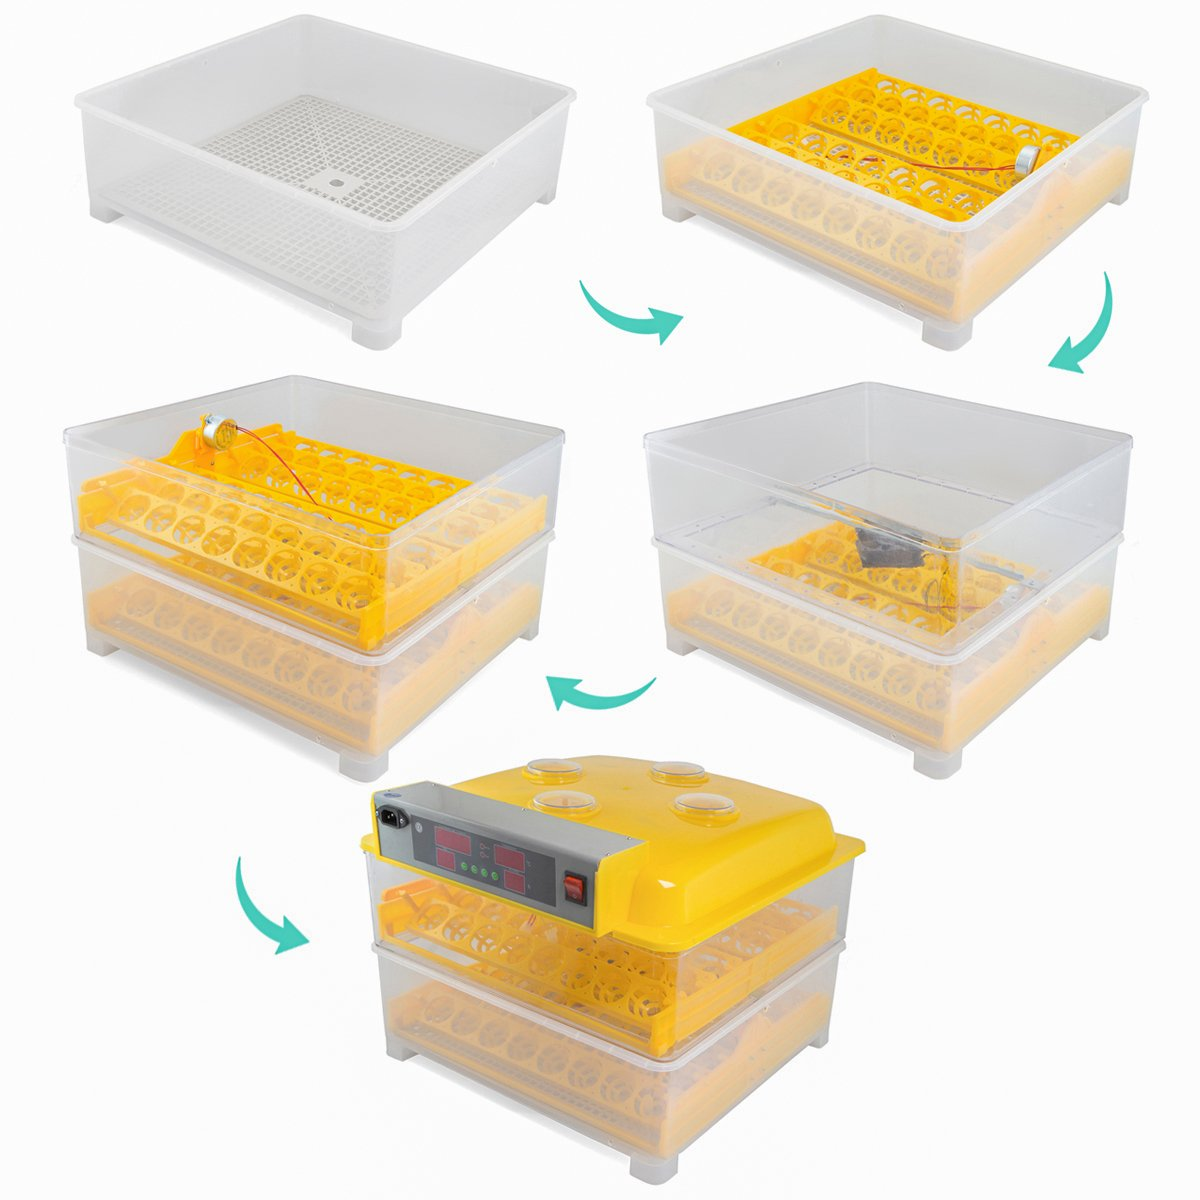 XtremepowerUS Egg Incubator 96 Eggs 2 Layer Digital Control Panel Poultry Hatcher Auto Egg Turner